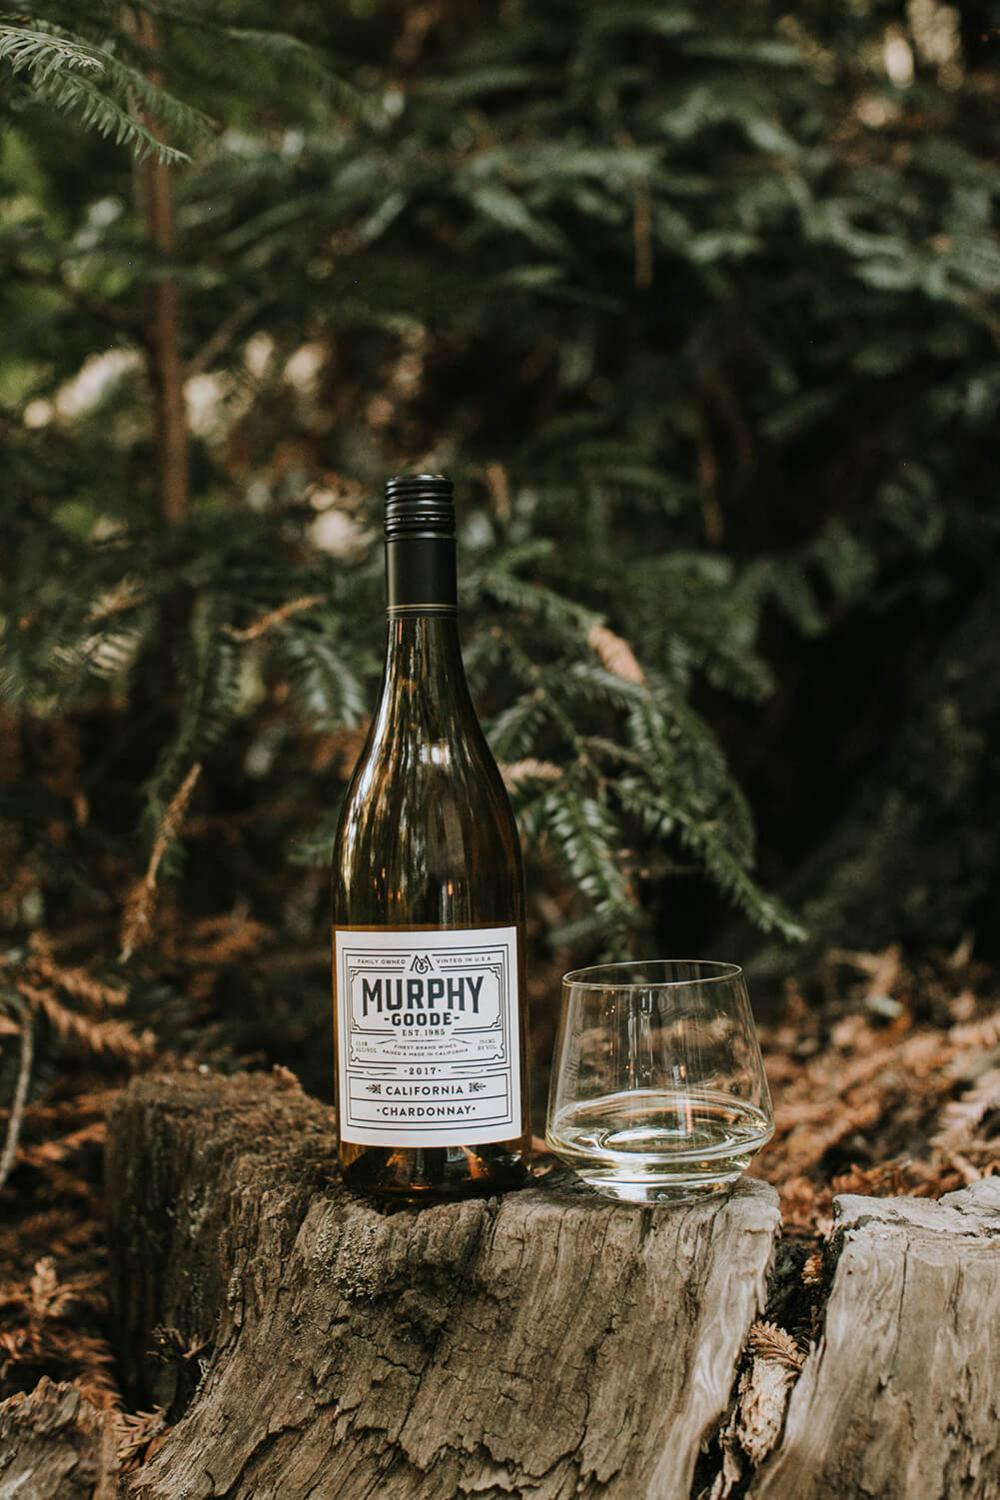 Murphy-Goode survival guide California Chardonnay